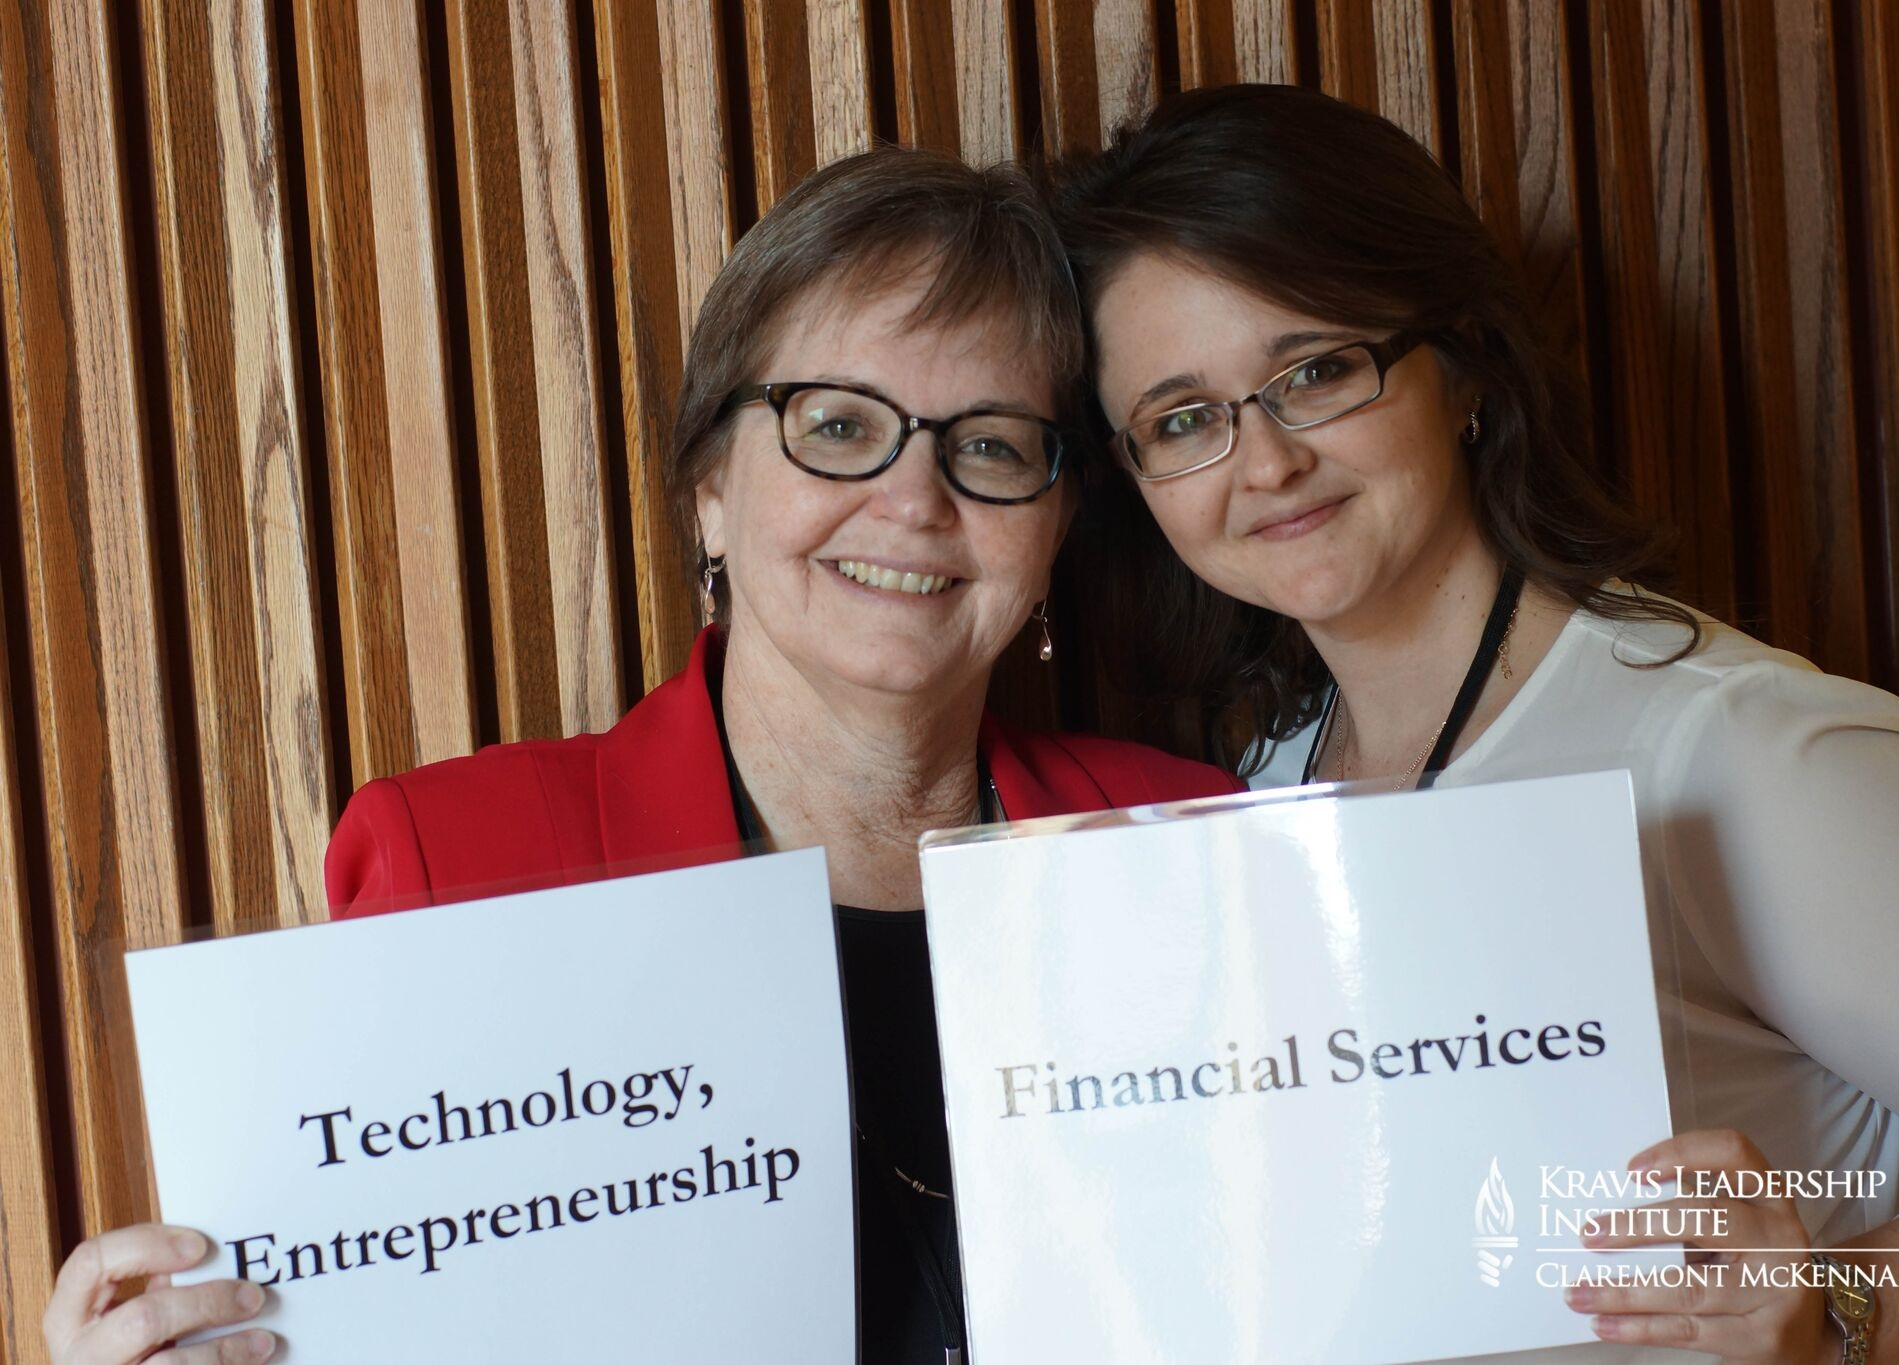 MOTHER AND DAUGHTER LEADERS:  Cheri Strelow (left) with her daughter Katrina Soelter (right) at the Women and Leadership Workshop.